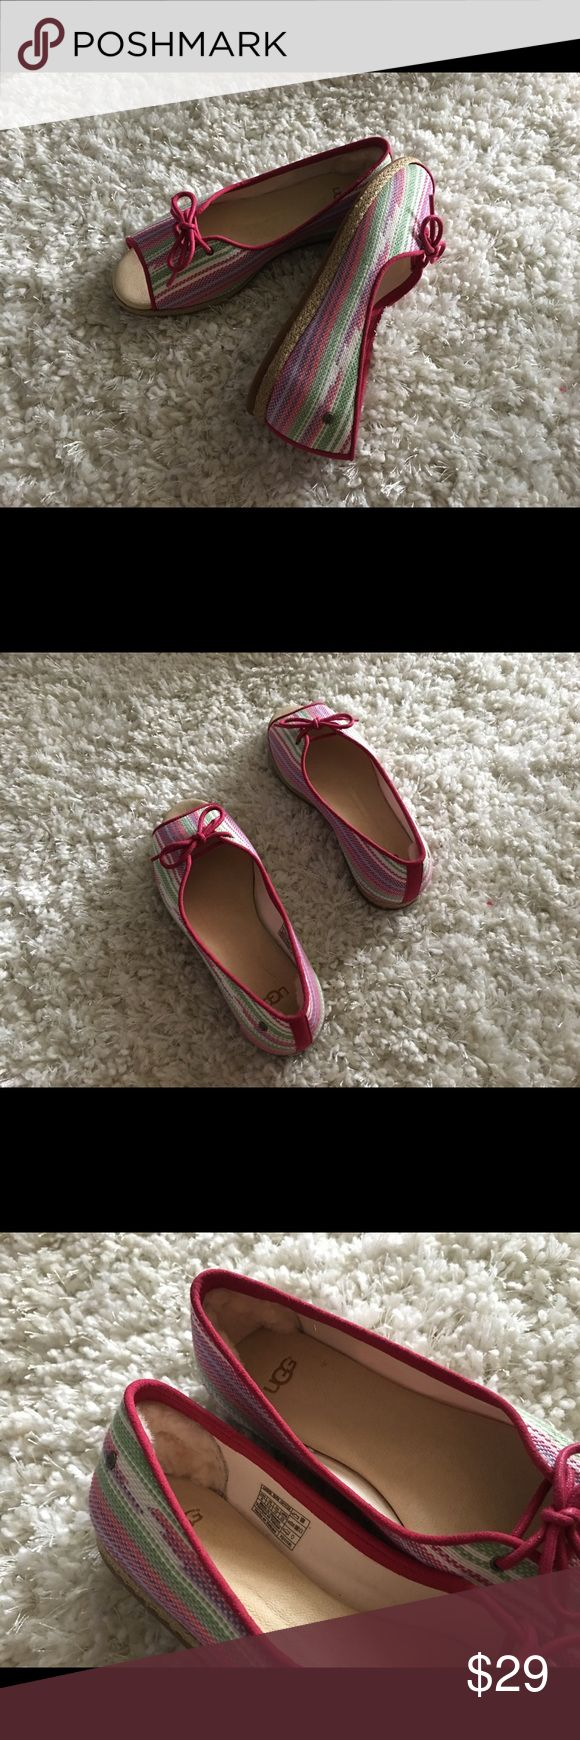 UGG Australia Marleigh Serape Espadrille Never worn. No box. UGG Shoes Sandals